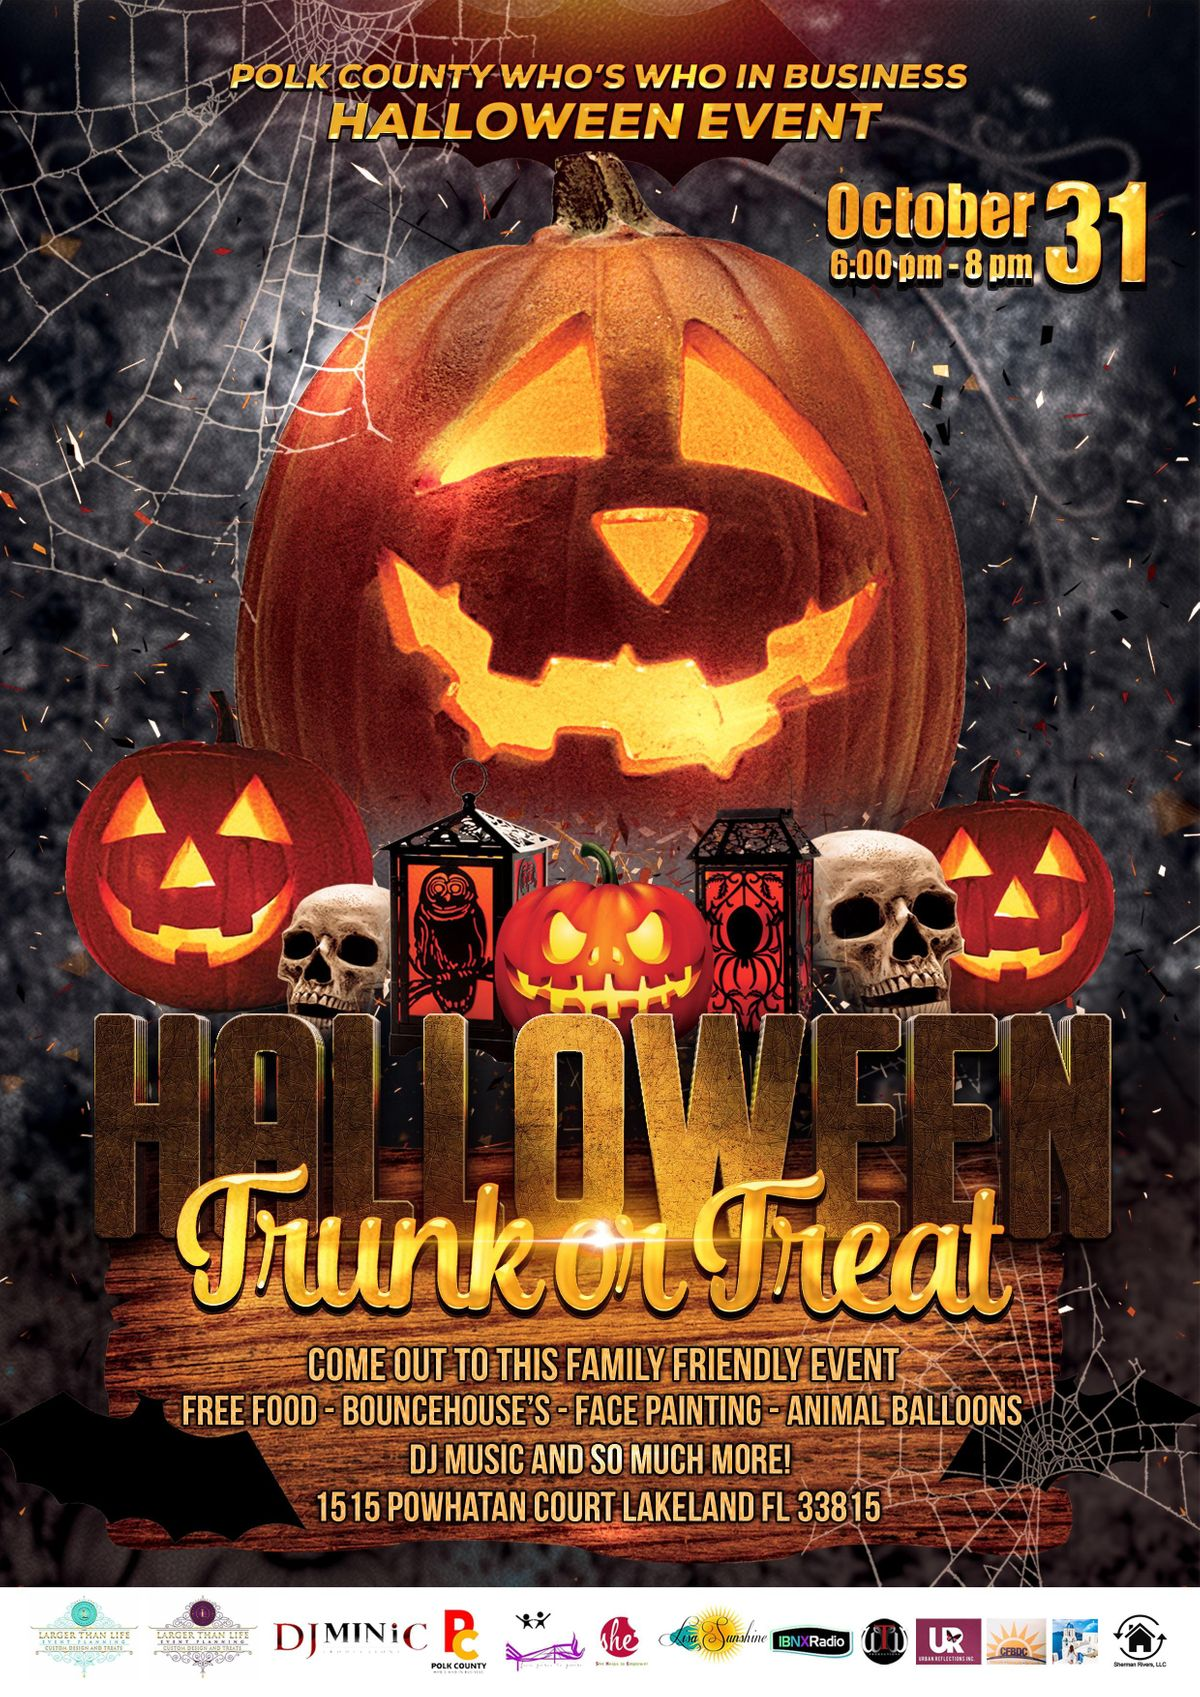 polk county halloween event trunk or treat ( free event) lakeland